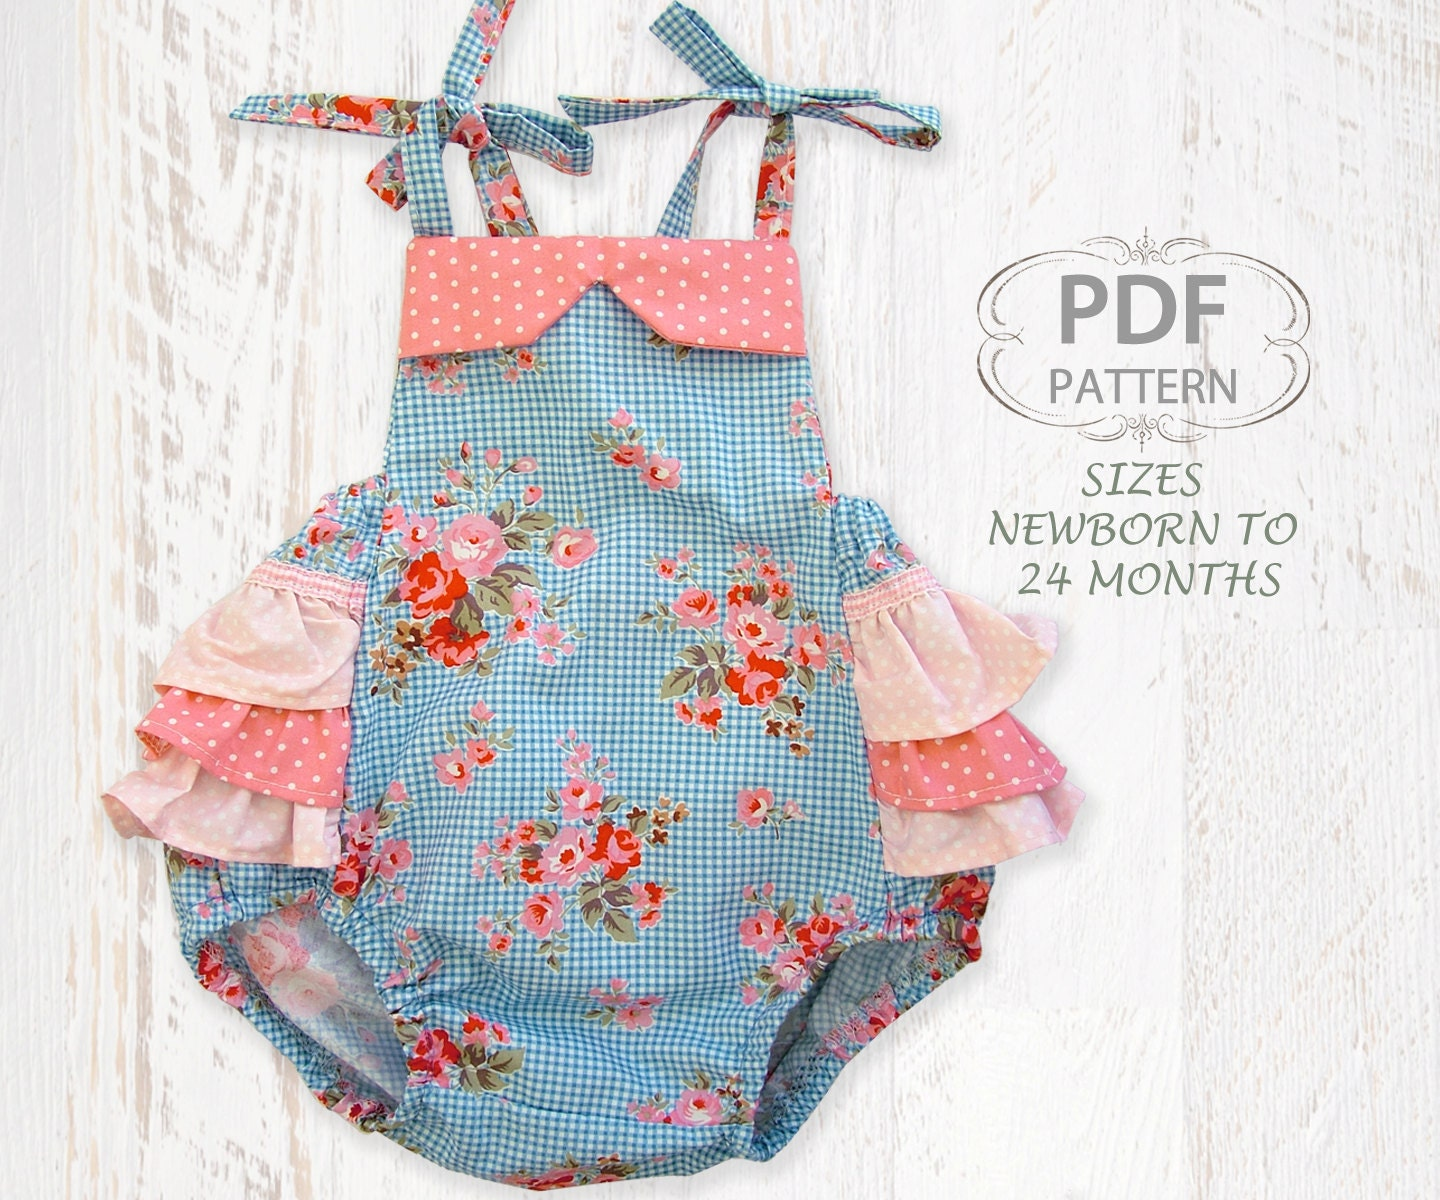 Baby sewing pattern for romper pdf sewing pattern for baby zoom jeuxipadfo Gallery